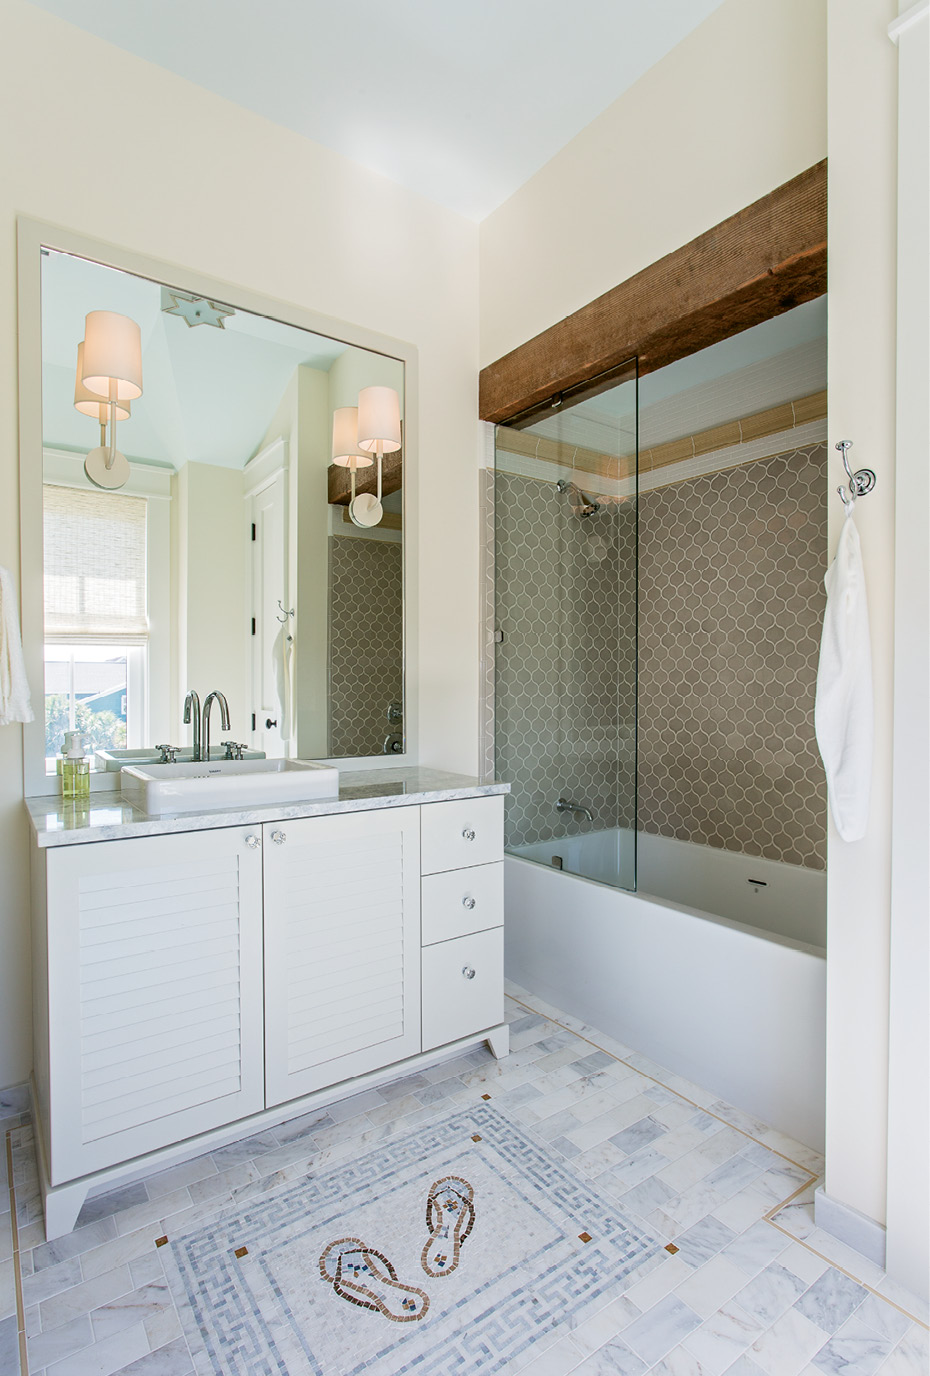 It's In the Details: A vintage wood beam and a tile floor embellished with a custom flip-flop mosaic add personality to this bath.